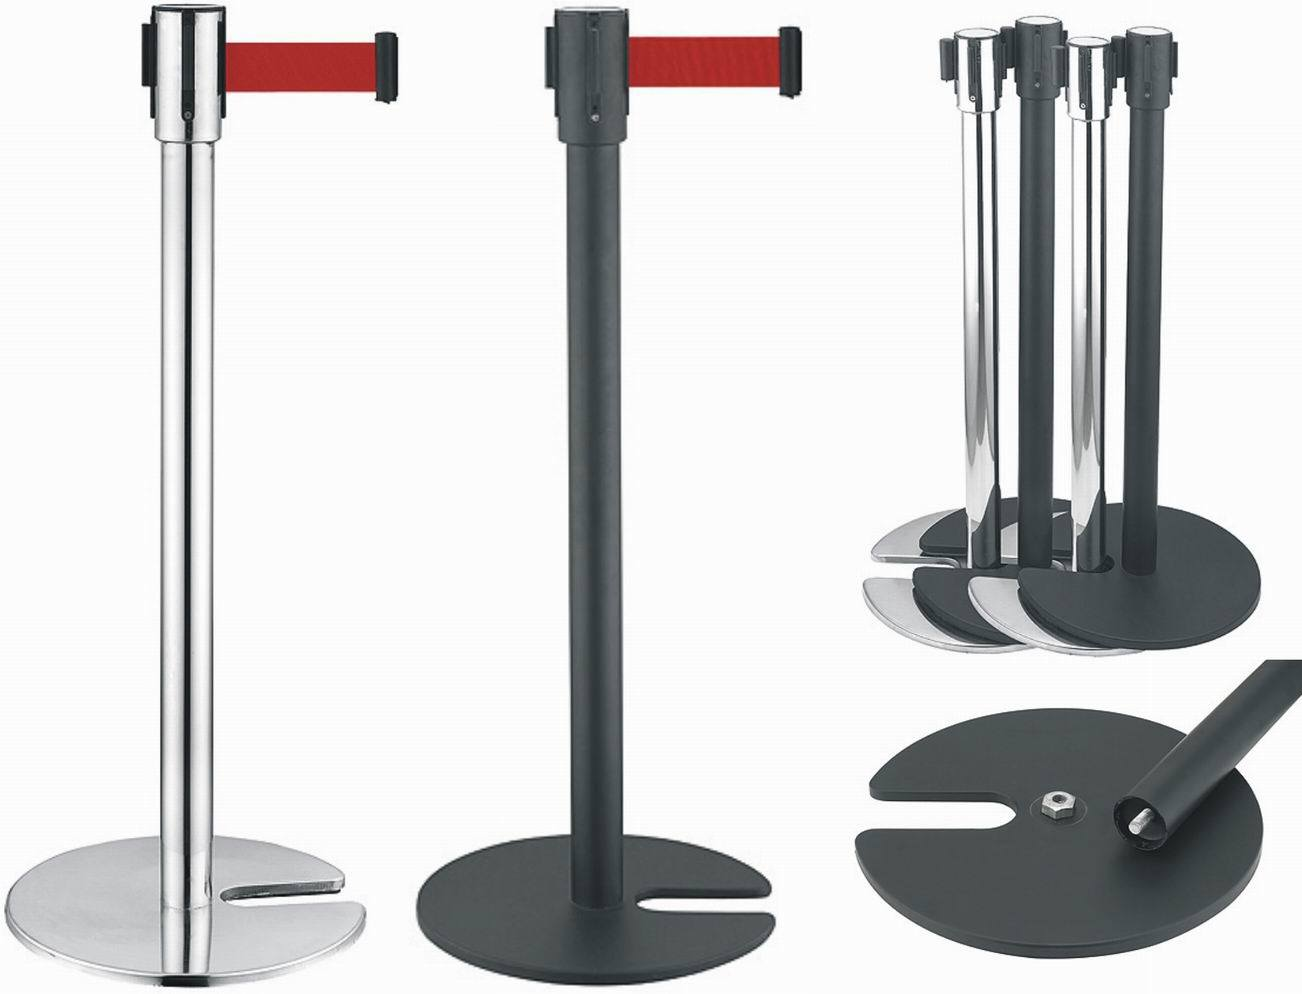 Stackable Retractable Crowd Control Stanchions. Texas Cna Certification List Mortgage Lenders. Internet Services Available Map Of Apex Nc. Employment Screening Resources. Mercedes Benz Concept Car Locking Pliers Uses. Car Dealership Tulsa Ok Twu Graduate Programs. Rash And Fever In Toddler Jim Dandy Plumbing. Auto Title Loans In Michigan. Intuit Payment Processing Unclog Kitchen Sink